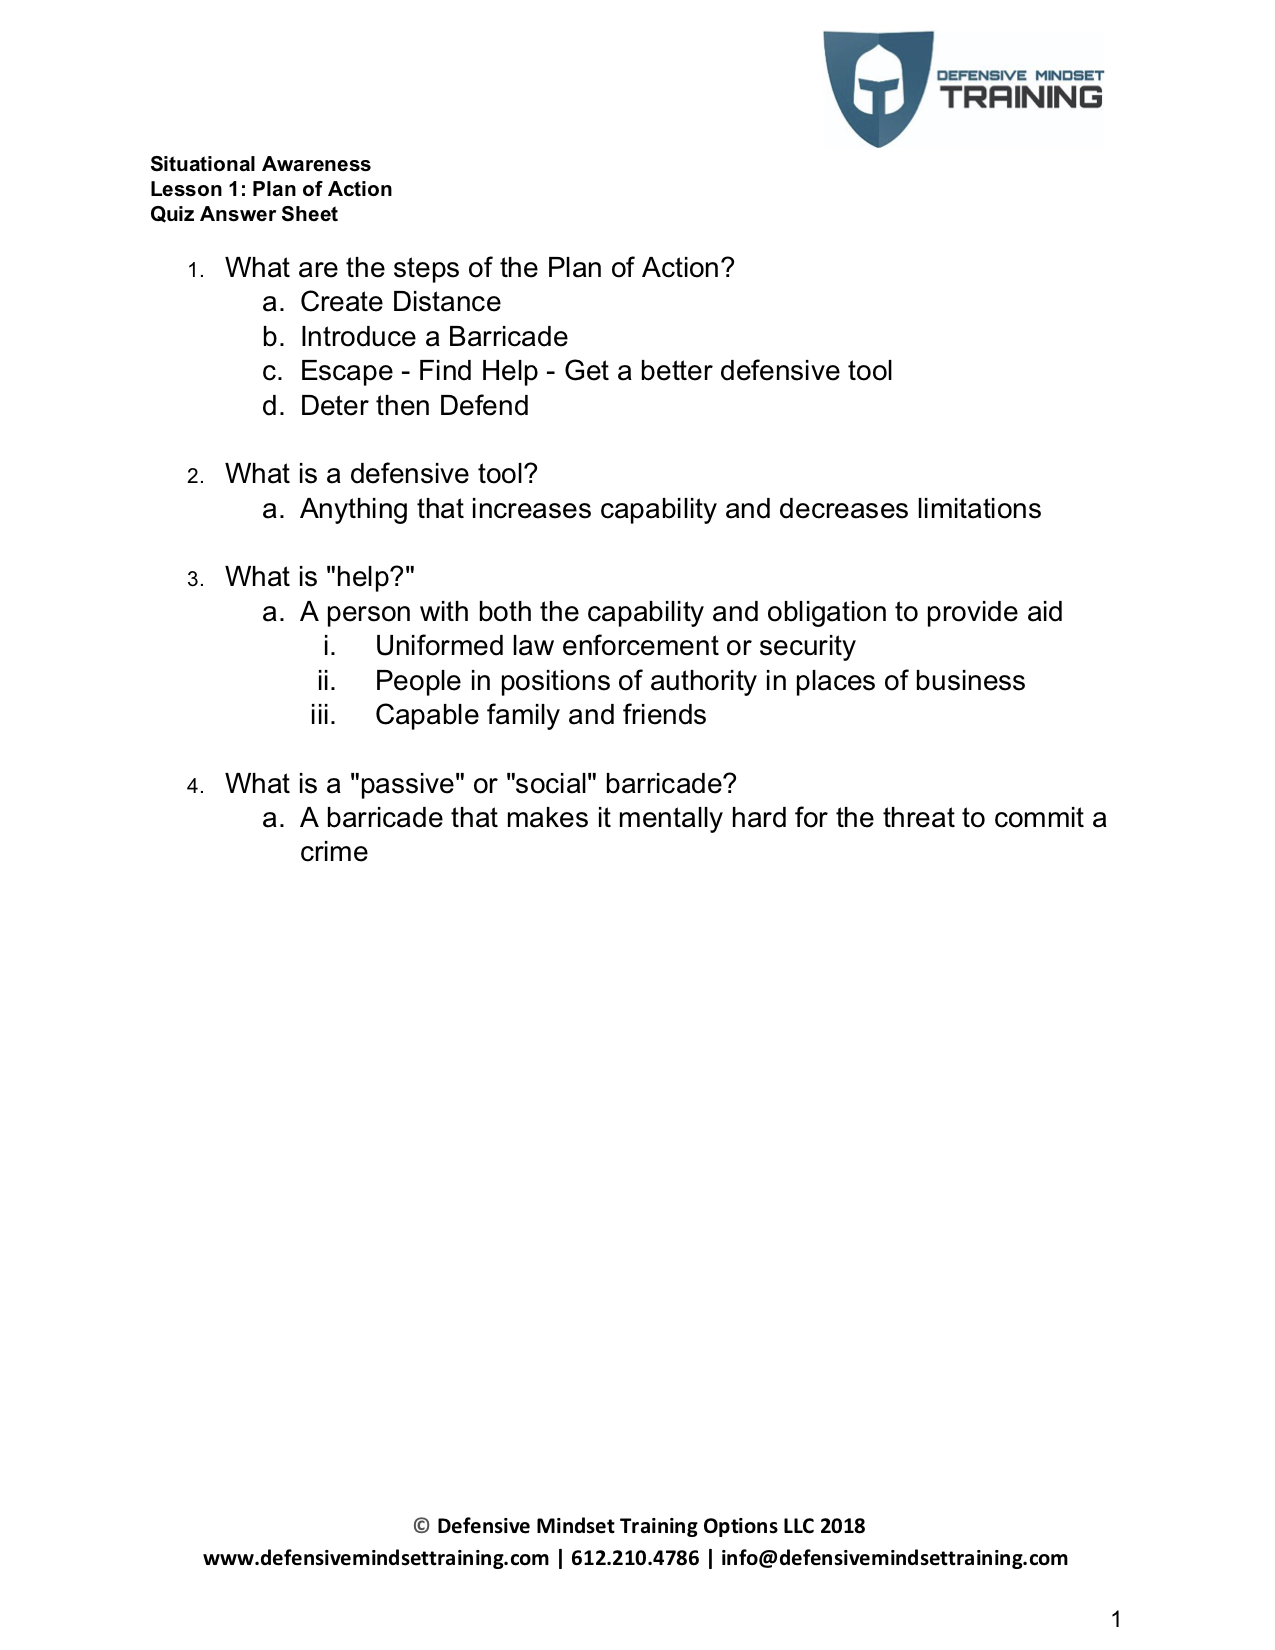 SA L1 - Plan of Action - Quiz Answer Sheet.jpg